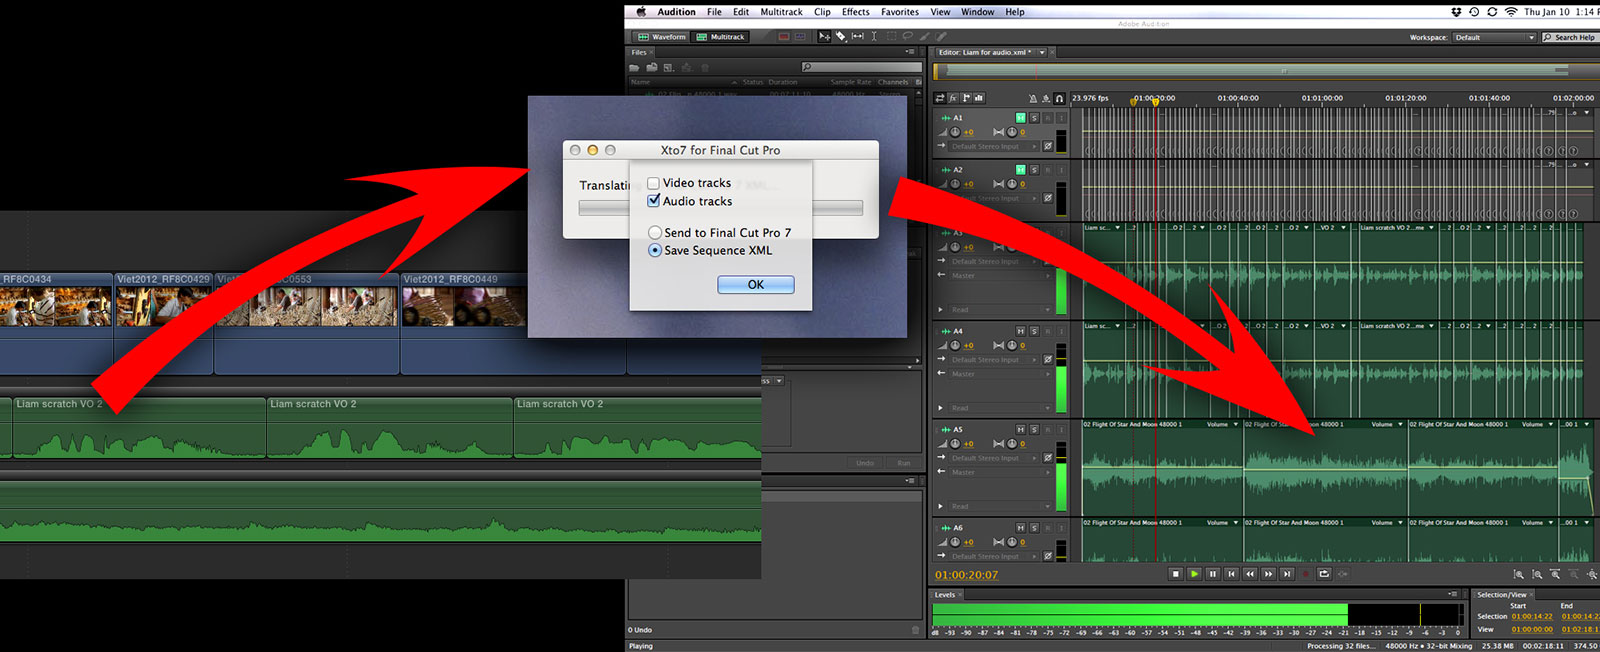 Final cut pro x download for windows 8 by jakeespinoza4721 issuu.